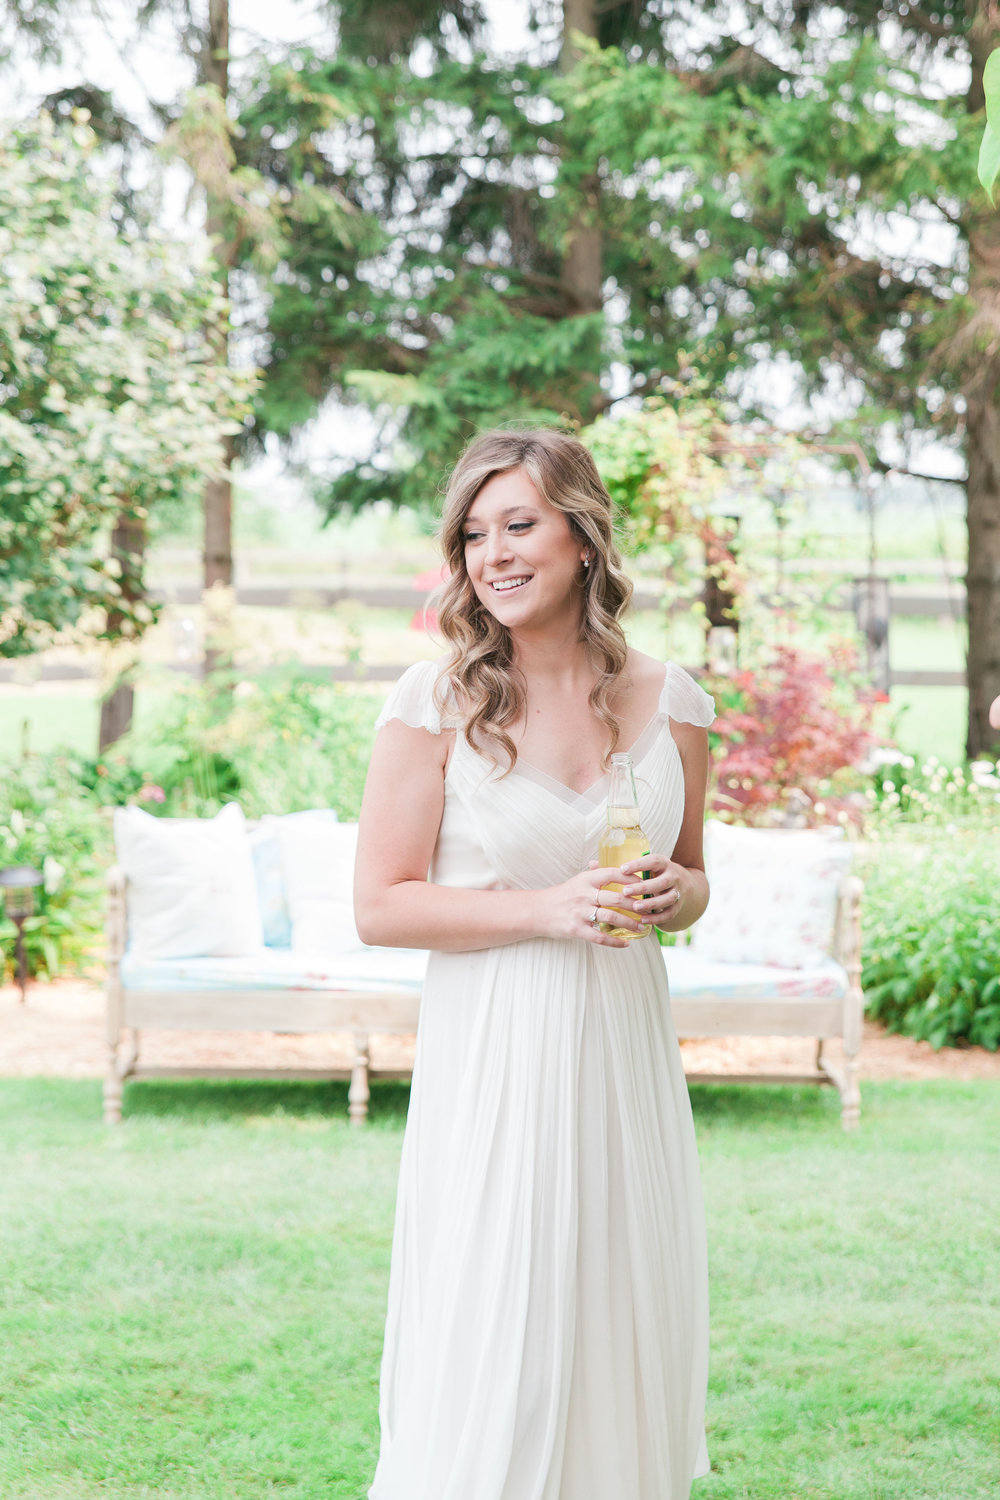 Bride at cocktail hour at farm wedding